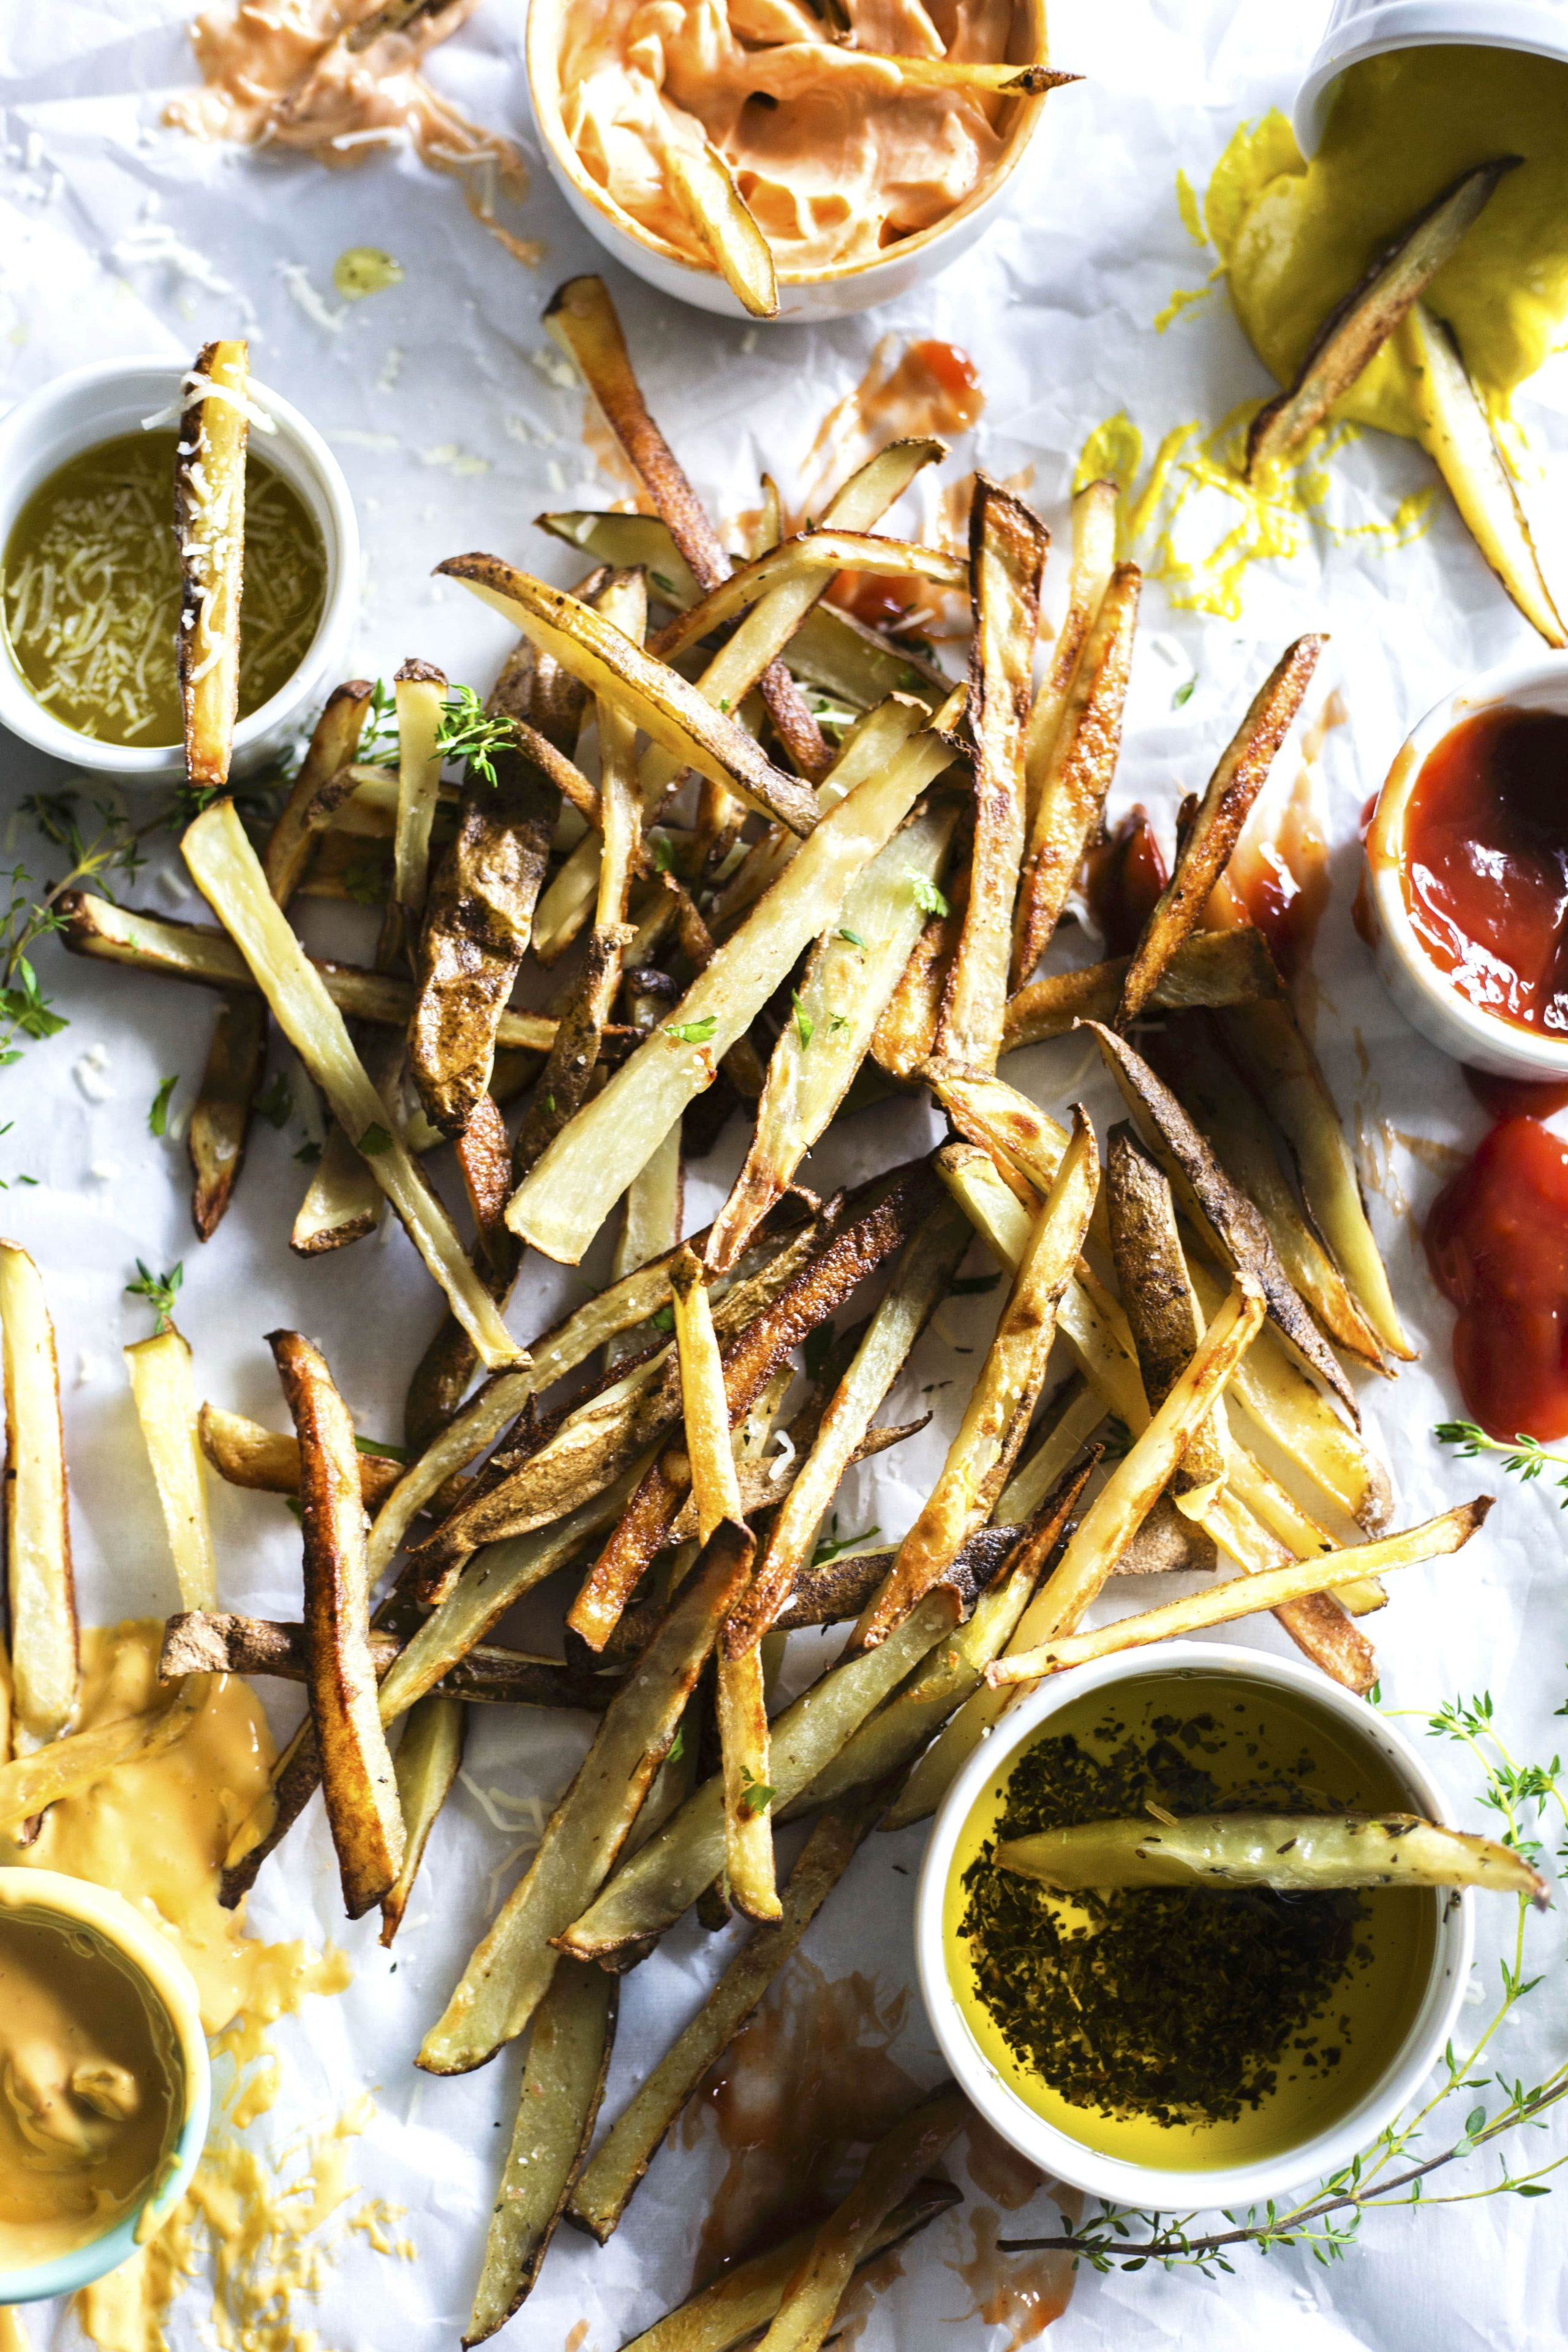 French Fry Bar | Build the ultimate french fry bar with your choice of condiments and homemade, baked fries!